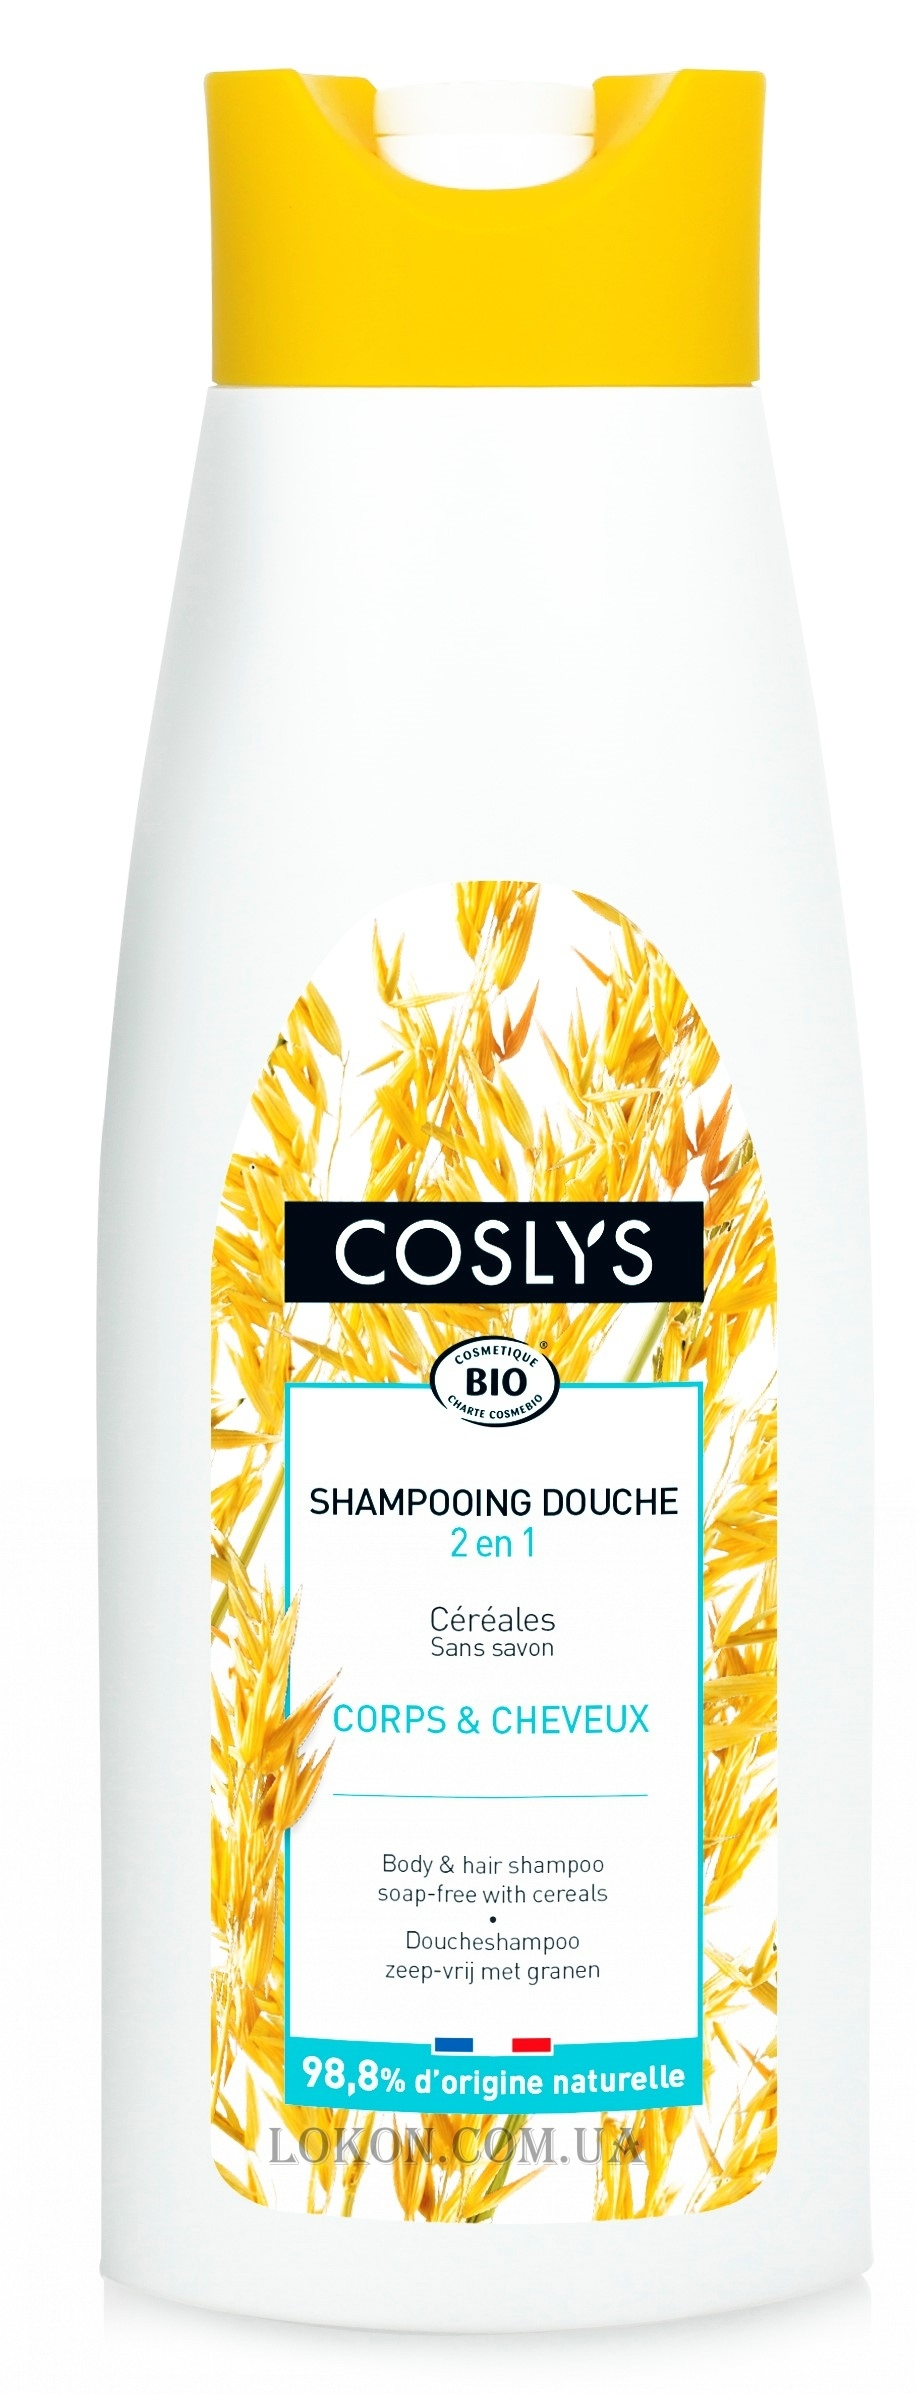 COSLYS Body&Hair Shampoo 2-in-1 soap-free with Cereals - Шампунь для волос и тела на основе злаков без мыла